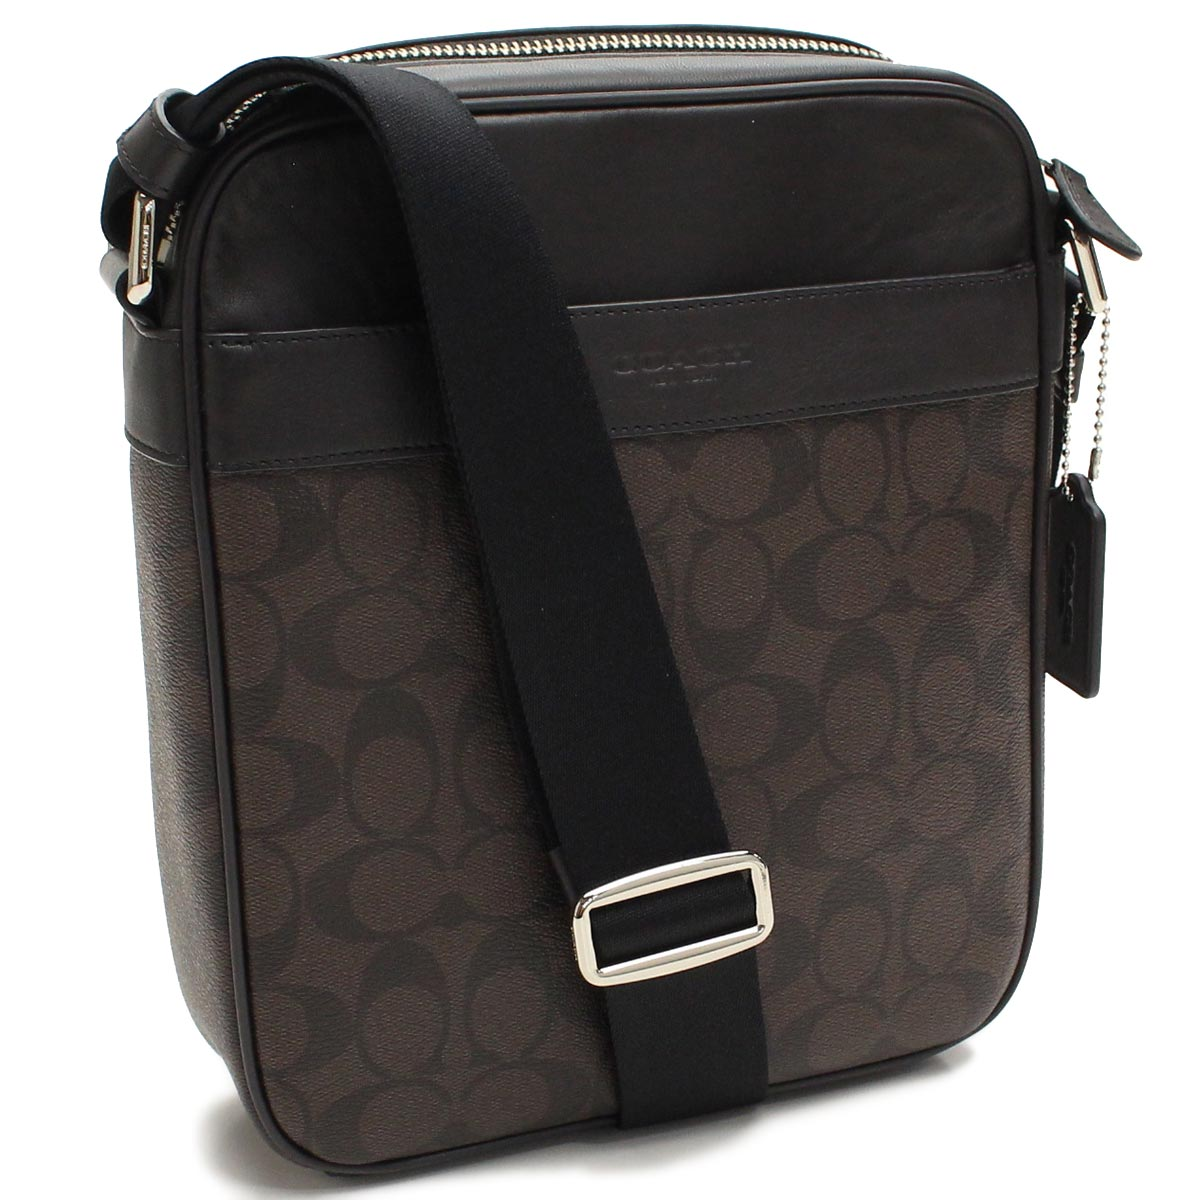 Pvc Leather Flight Bag Diagonally Over The Coach Signature Shoulder F54788 Ma Br Brown Taxfree Send By Ems Authentic A Brand New Item